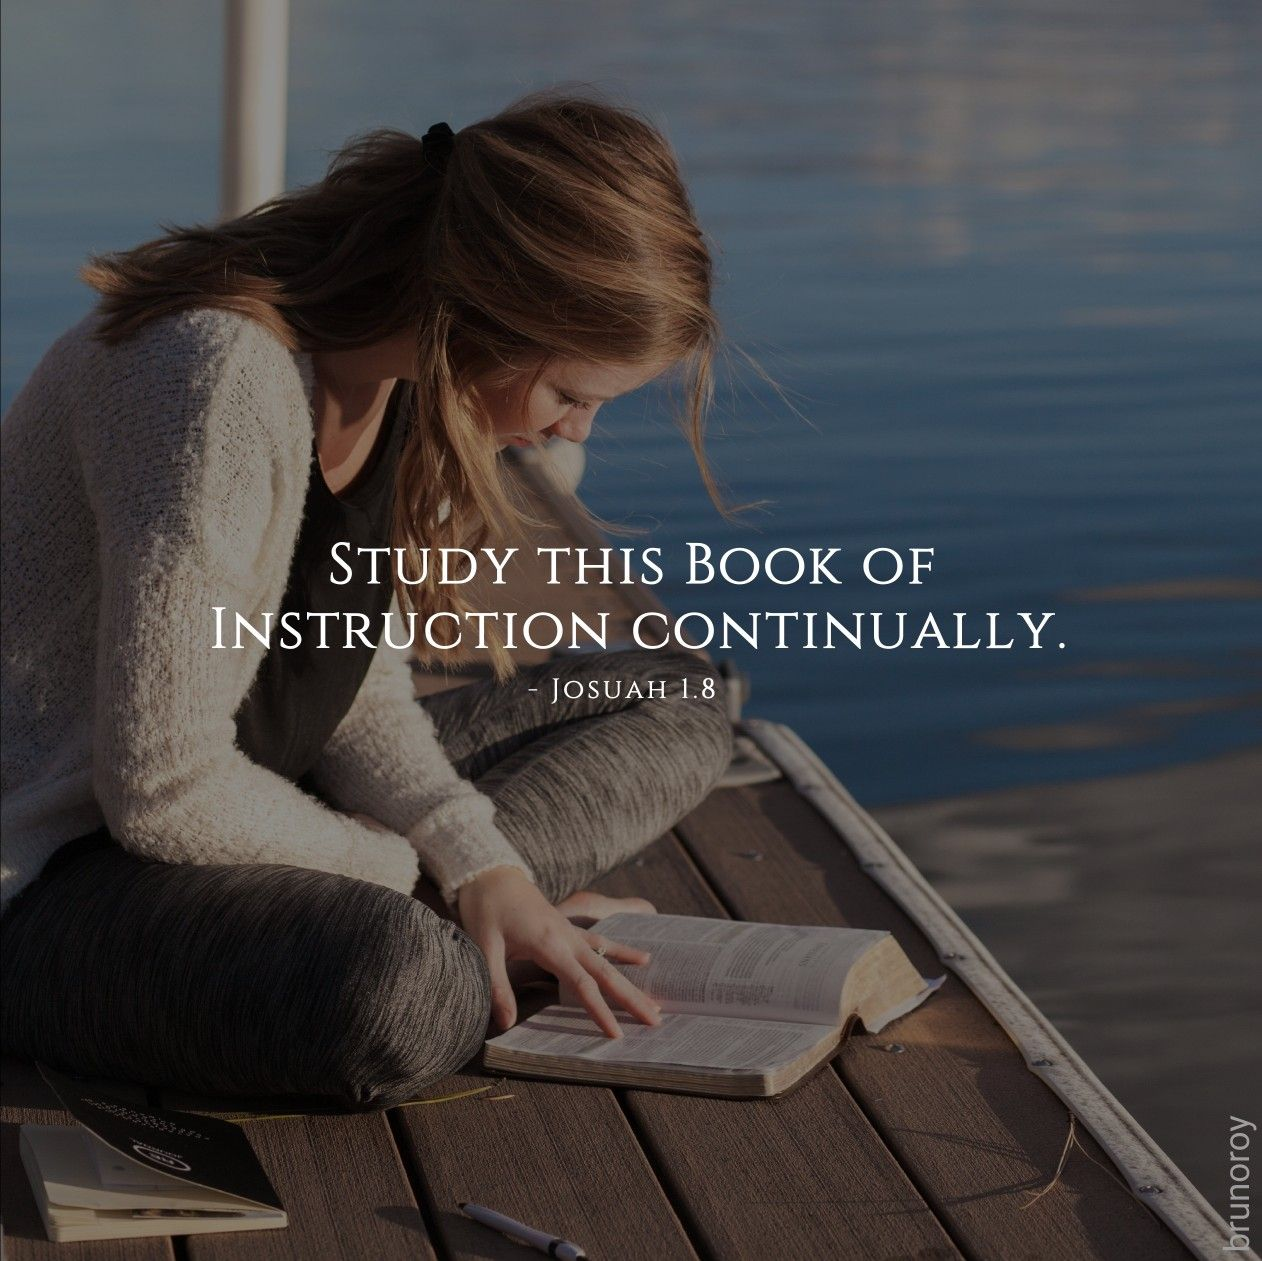 Study this book of instruction continually meditate on